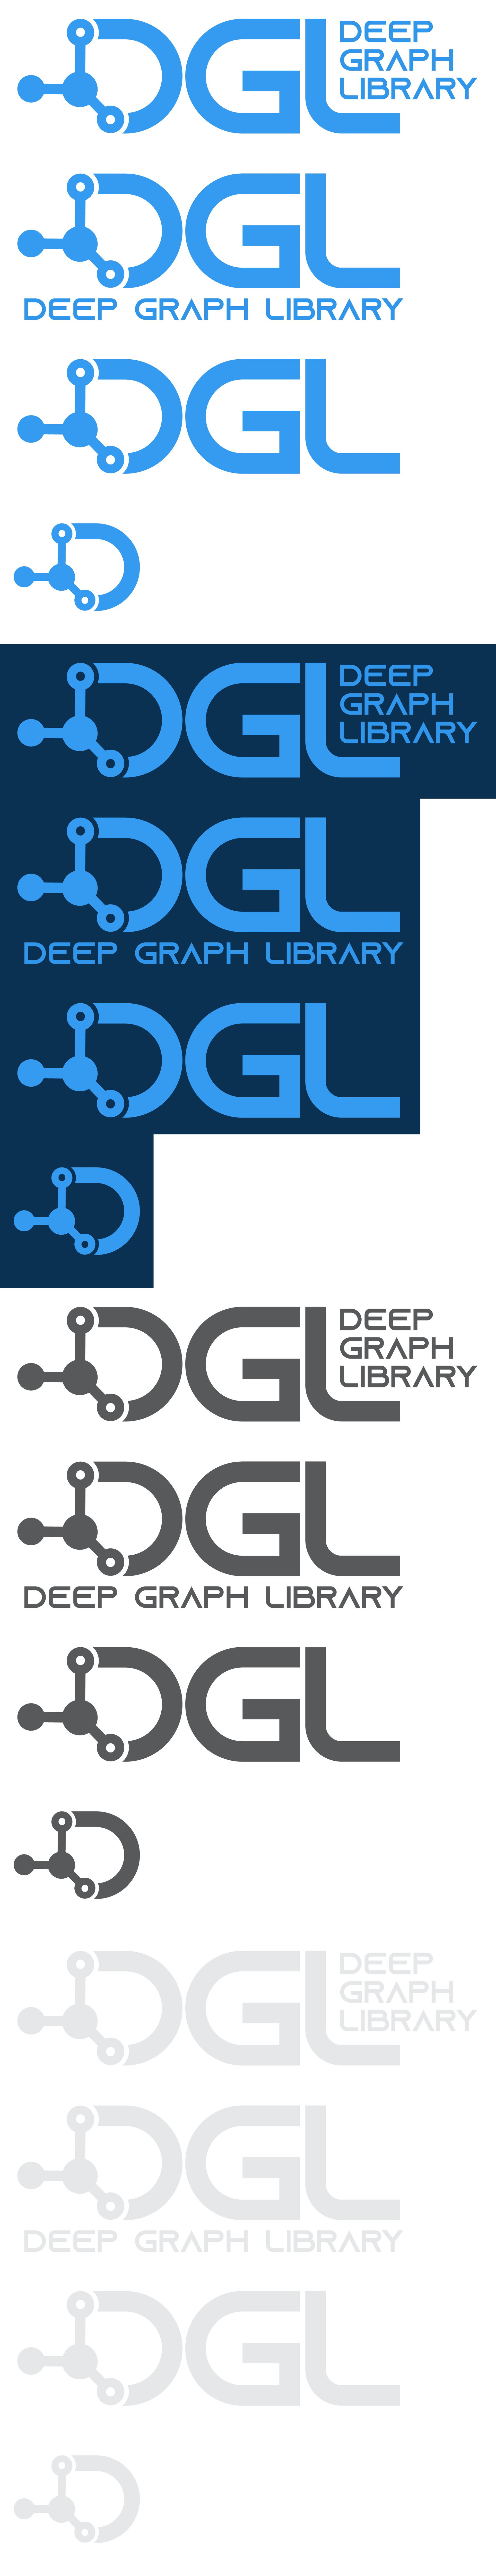 Logo for a Graph-based Neural Network Software Library targeting applied researchers